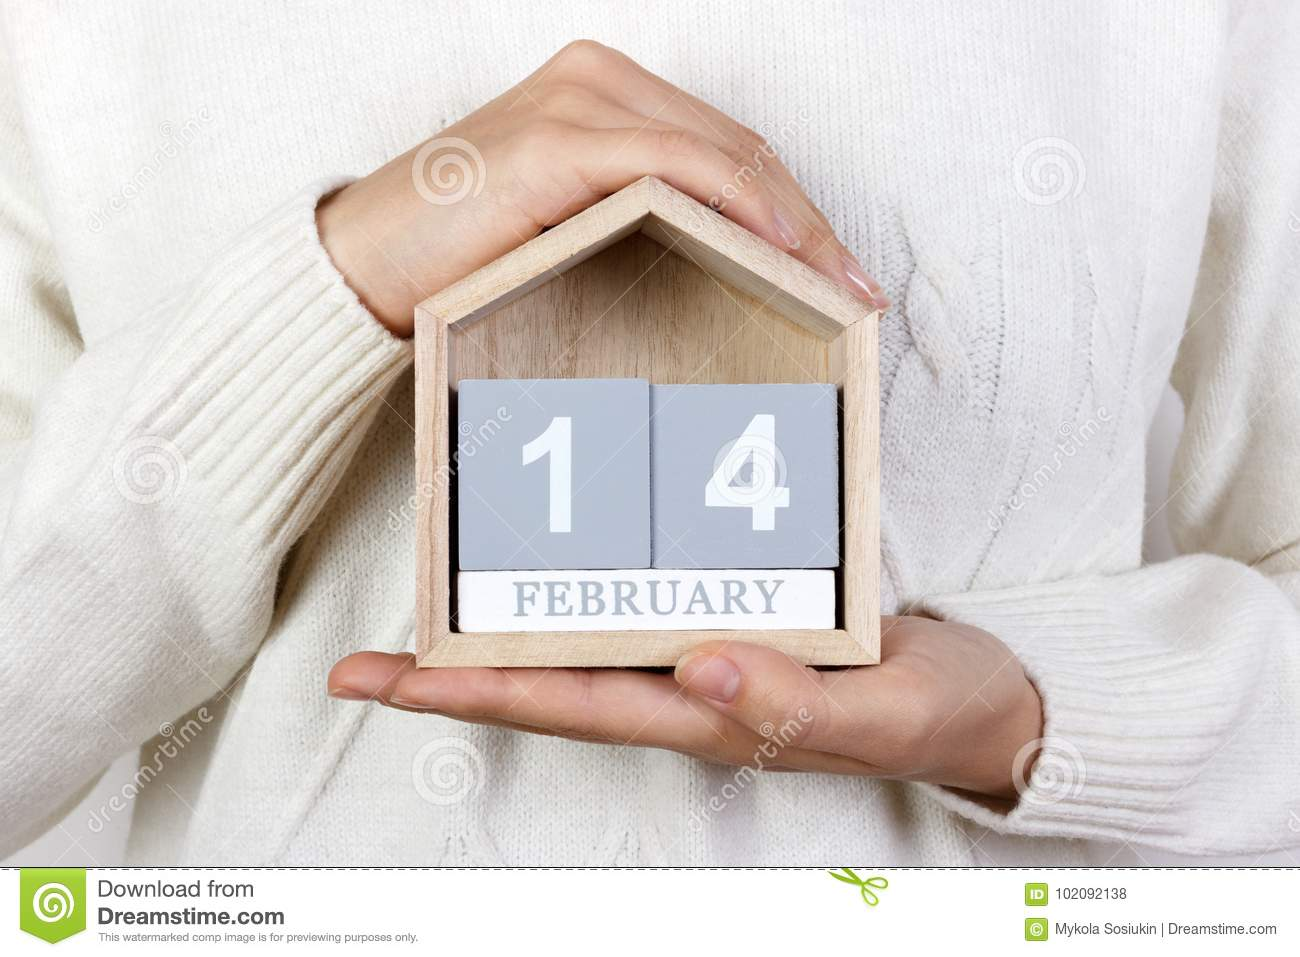 February 14 In The Calendar The Girl Is Holding A Wooden Calendar